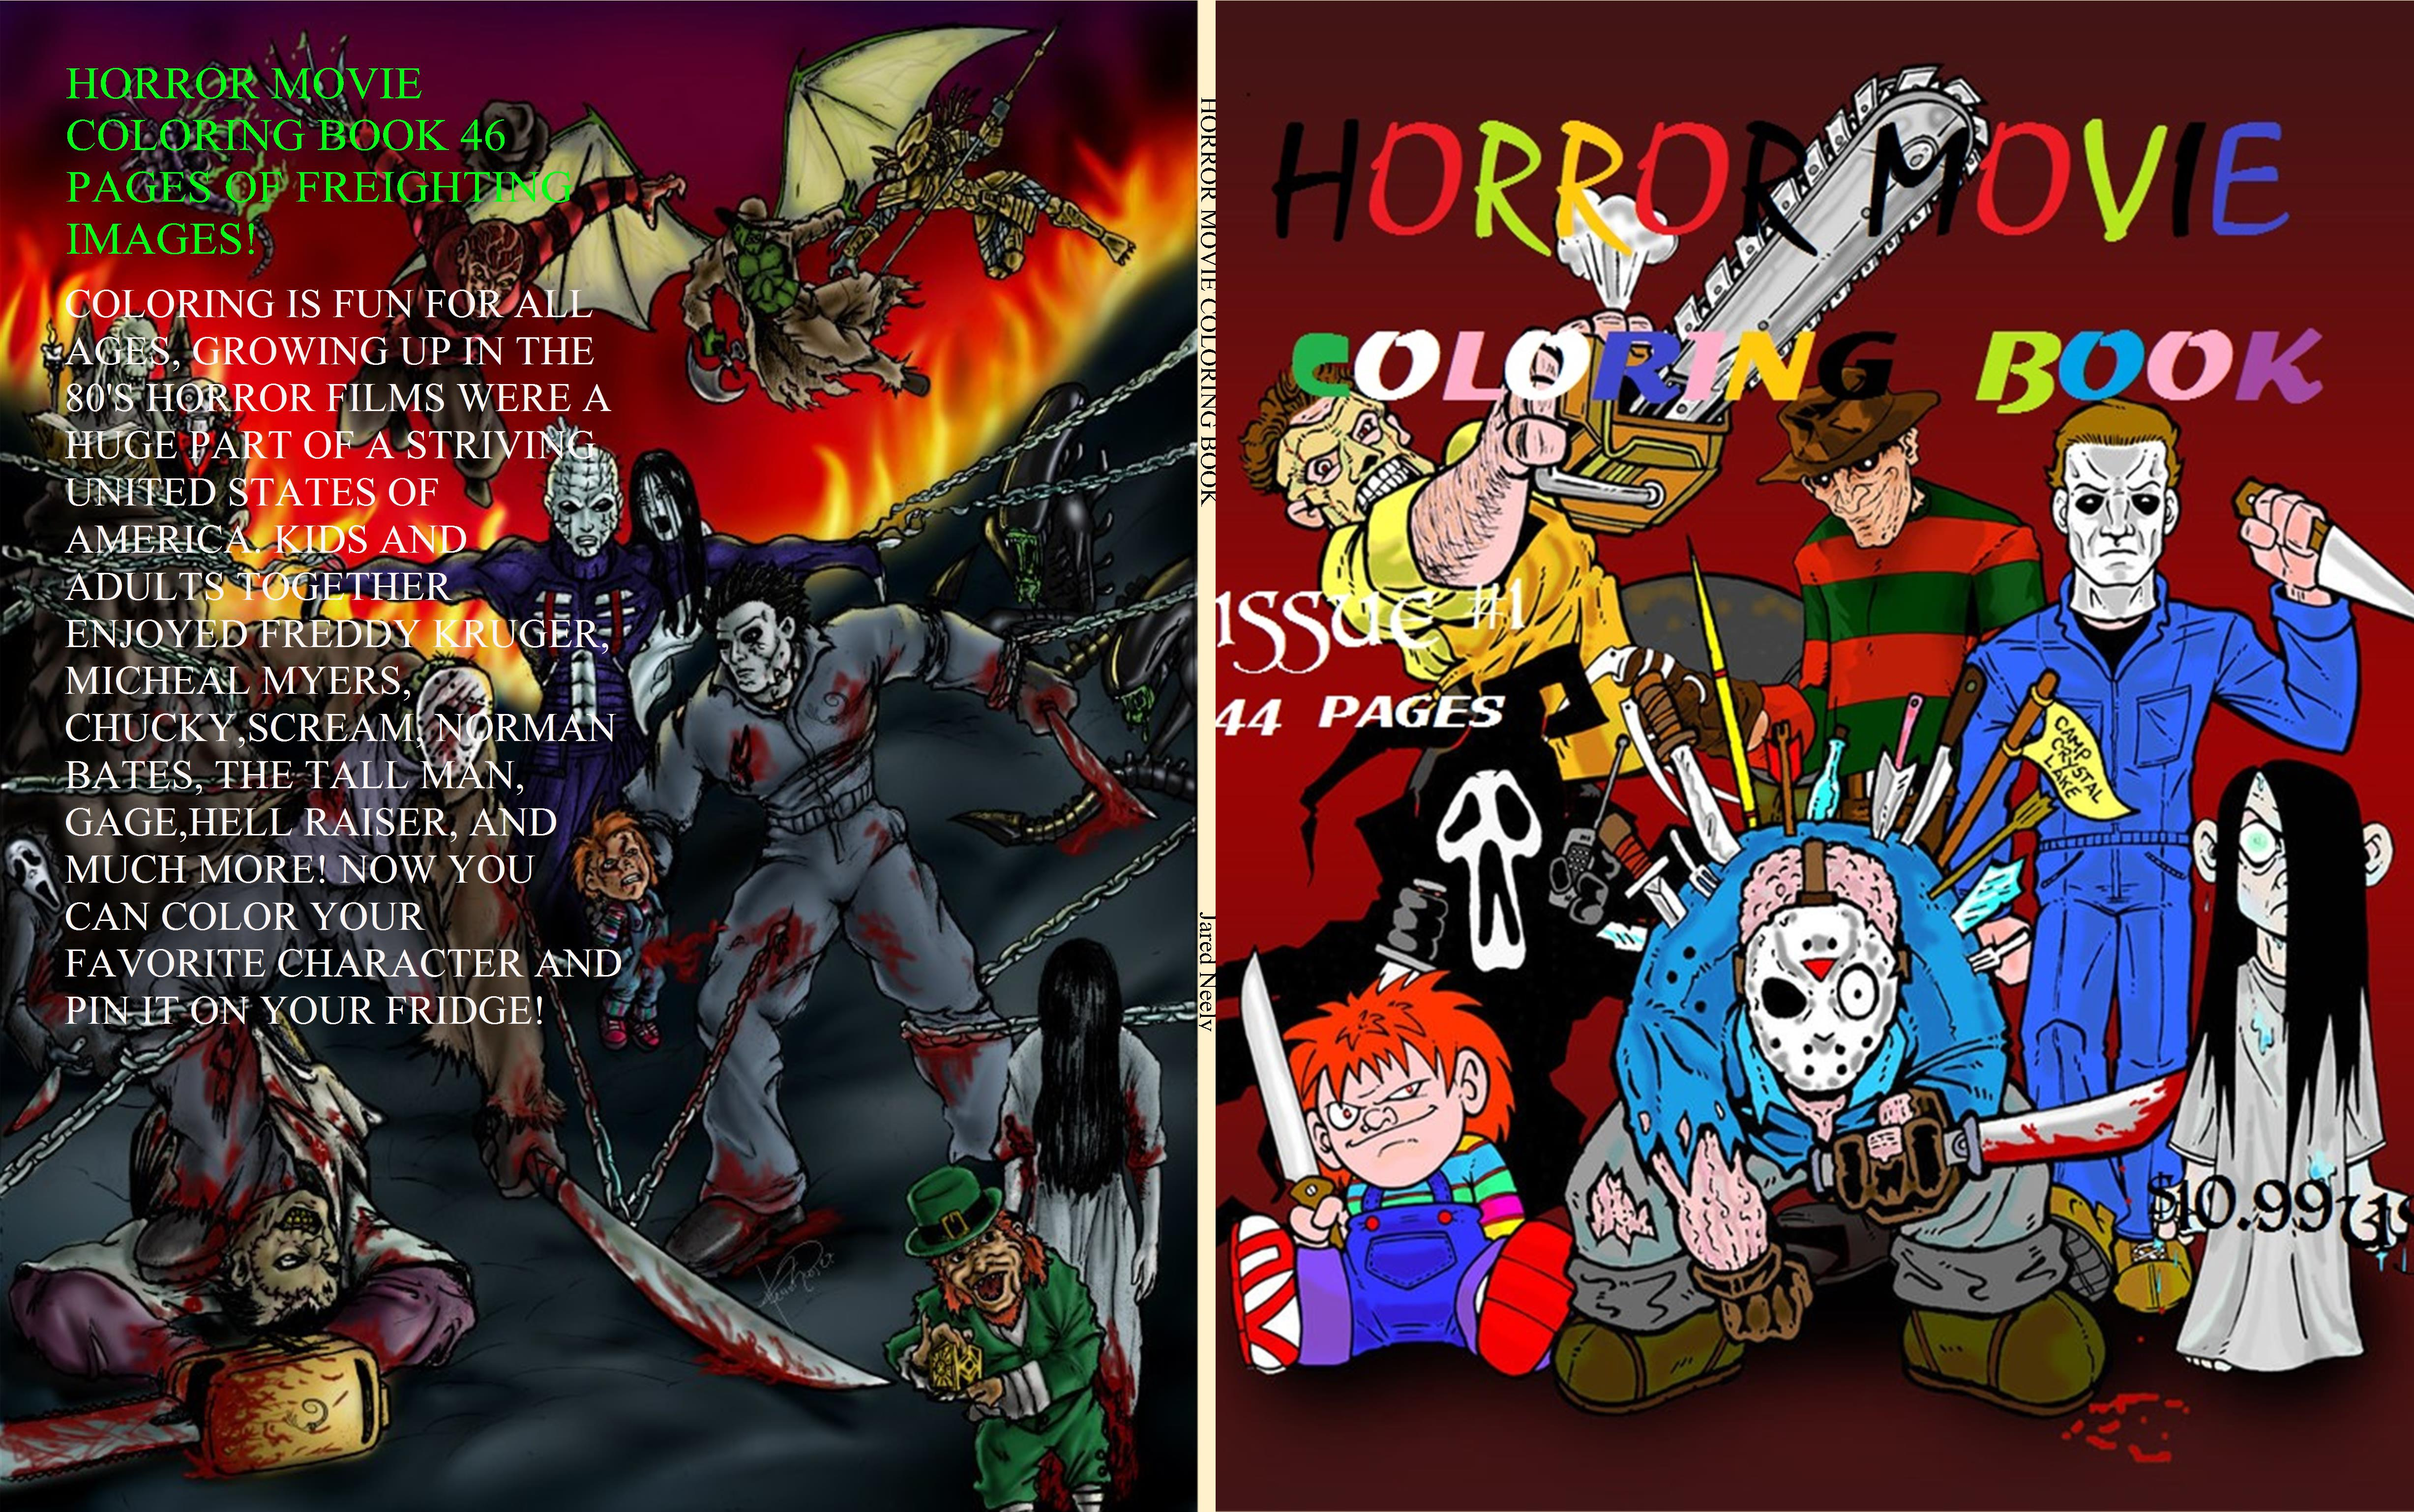 horror movie coloring book by jared neely 4 58 thebookpatch com